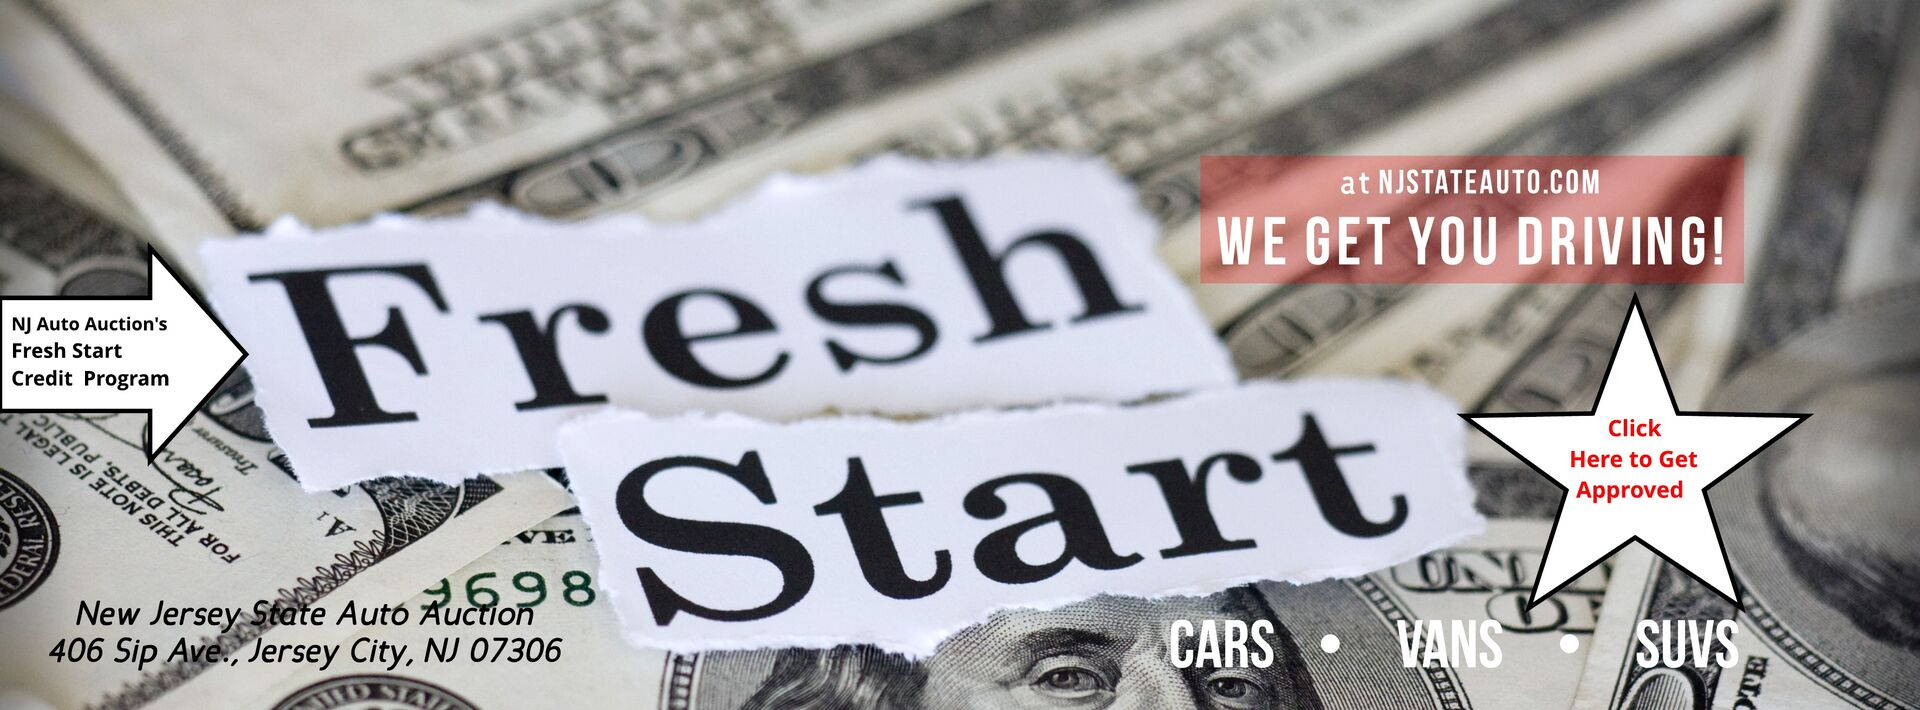 Used Cars NJ - Fresh Start Credit at NJ Auto Auction